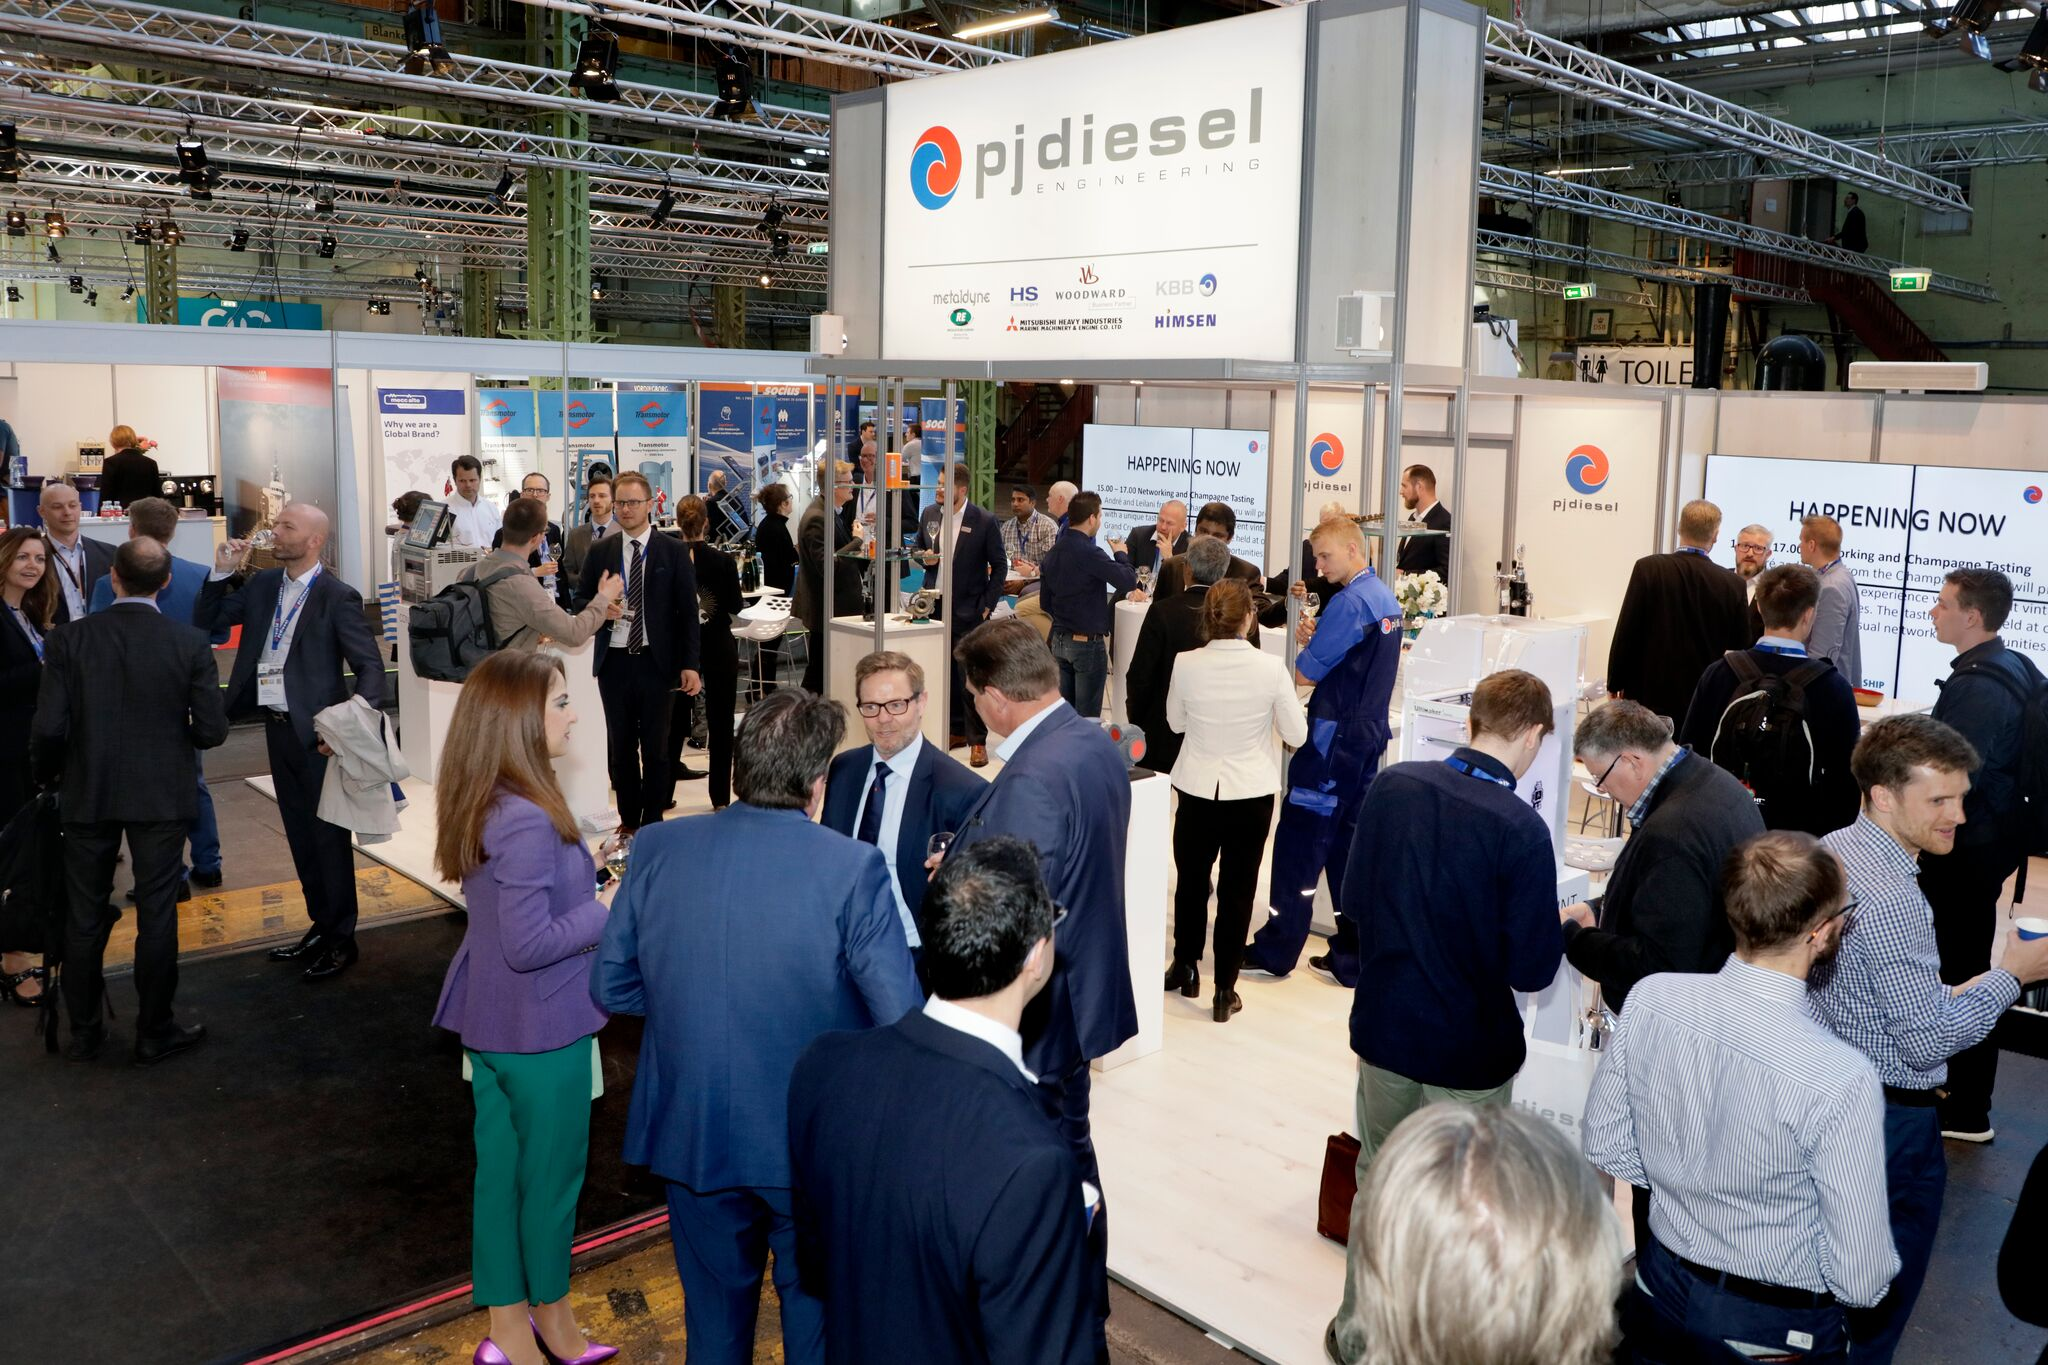 Great attendance for PJ Diesel at Danish Maritime Days (DMD)